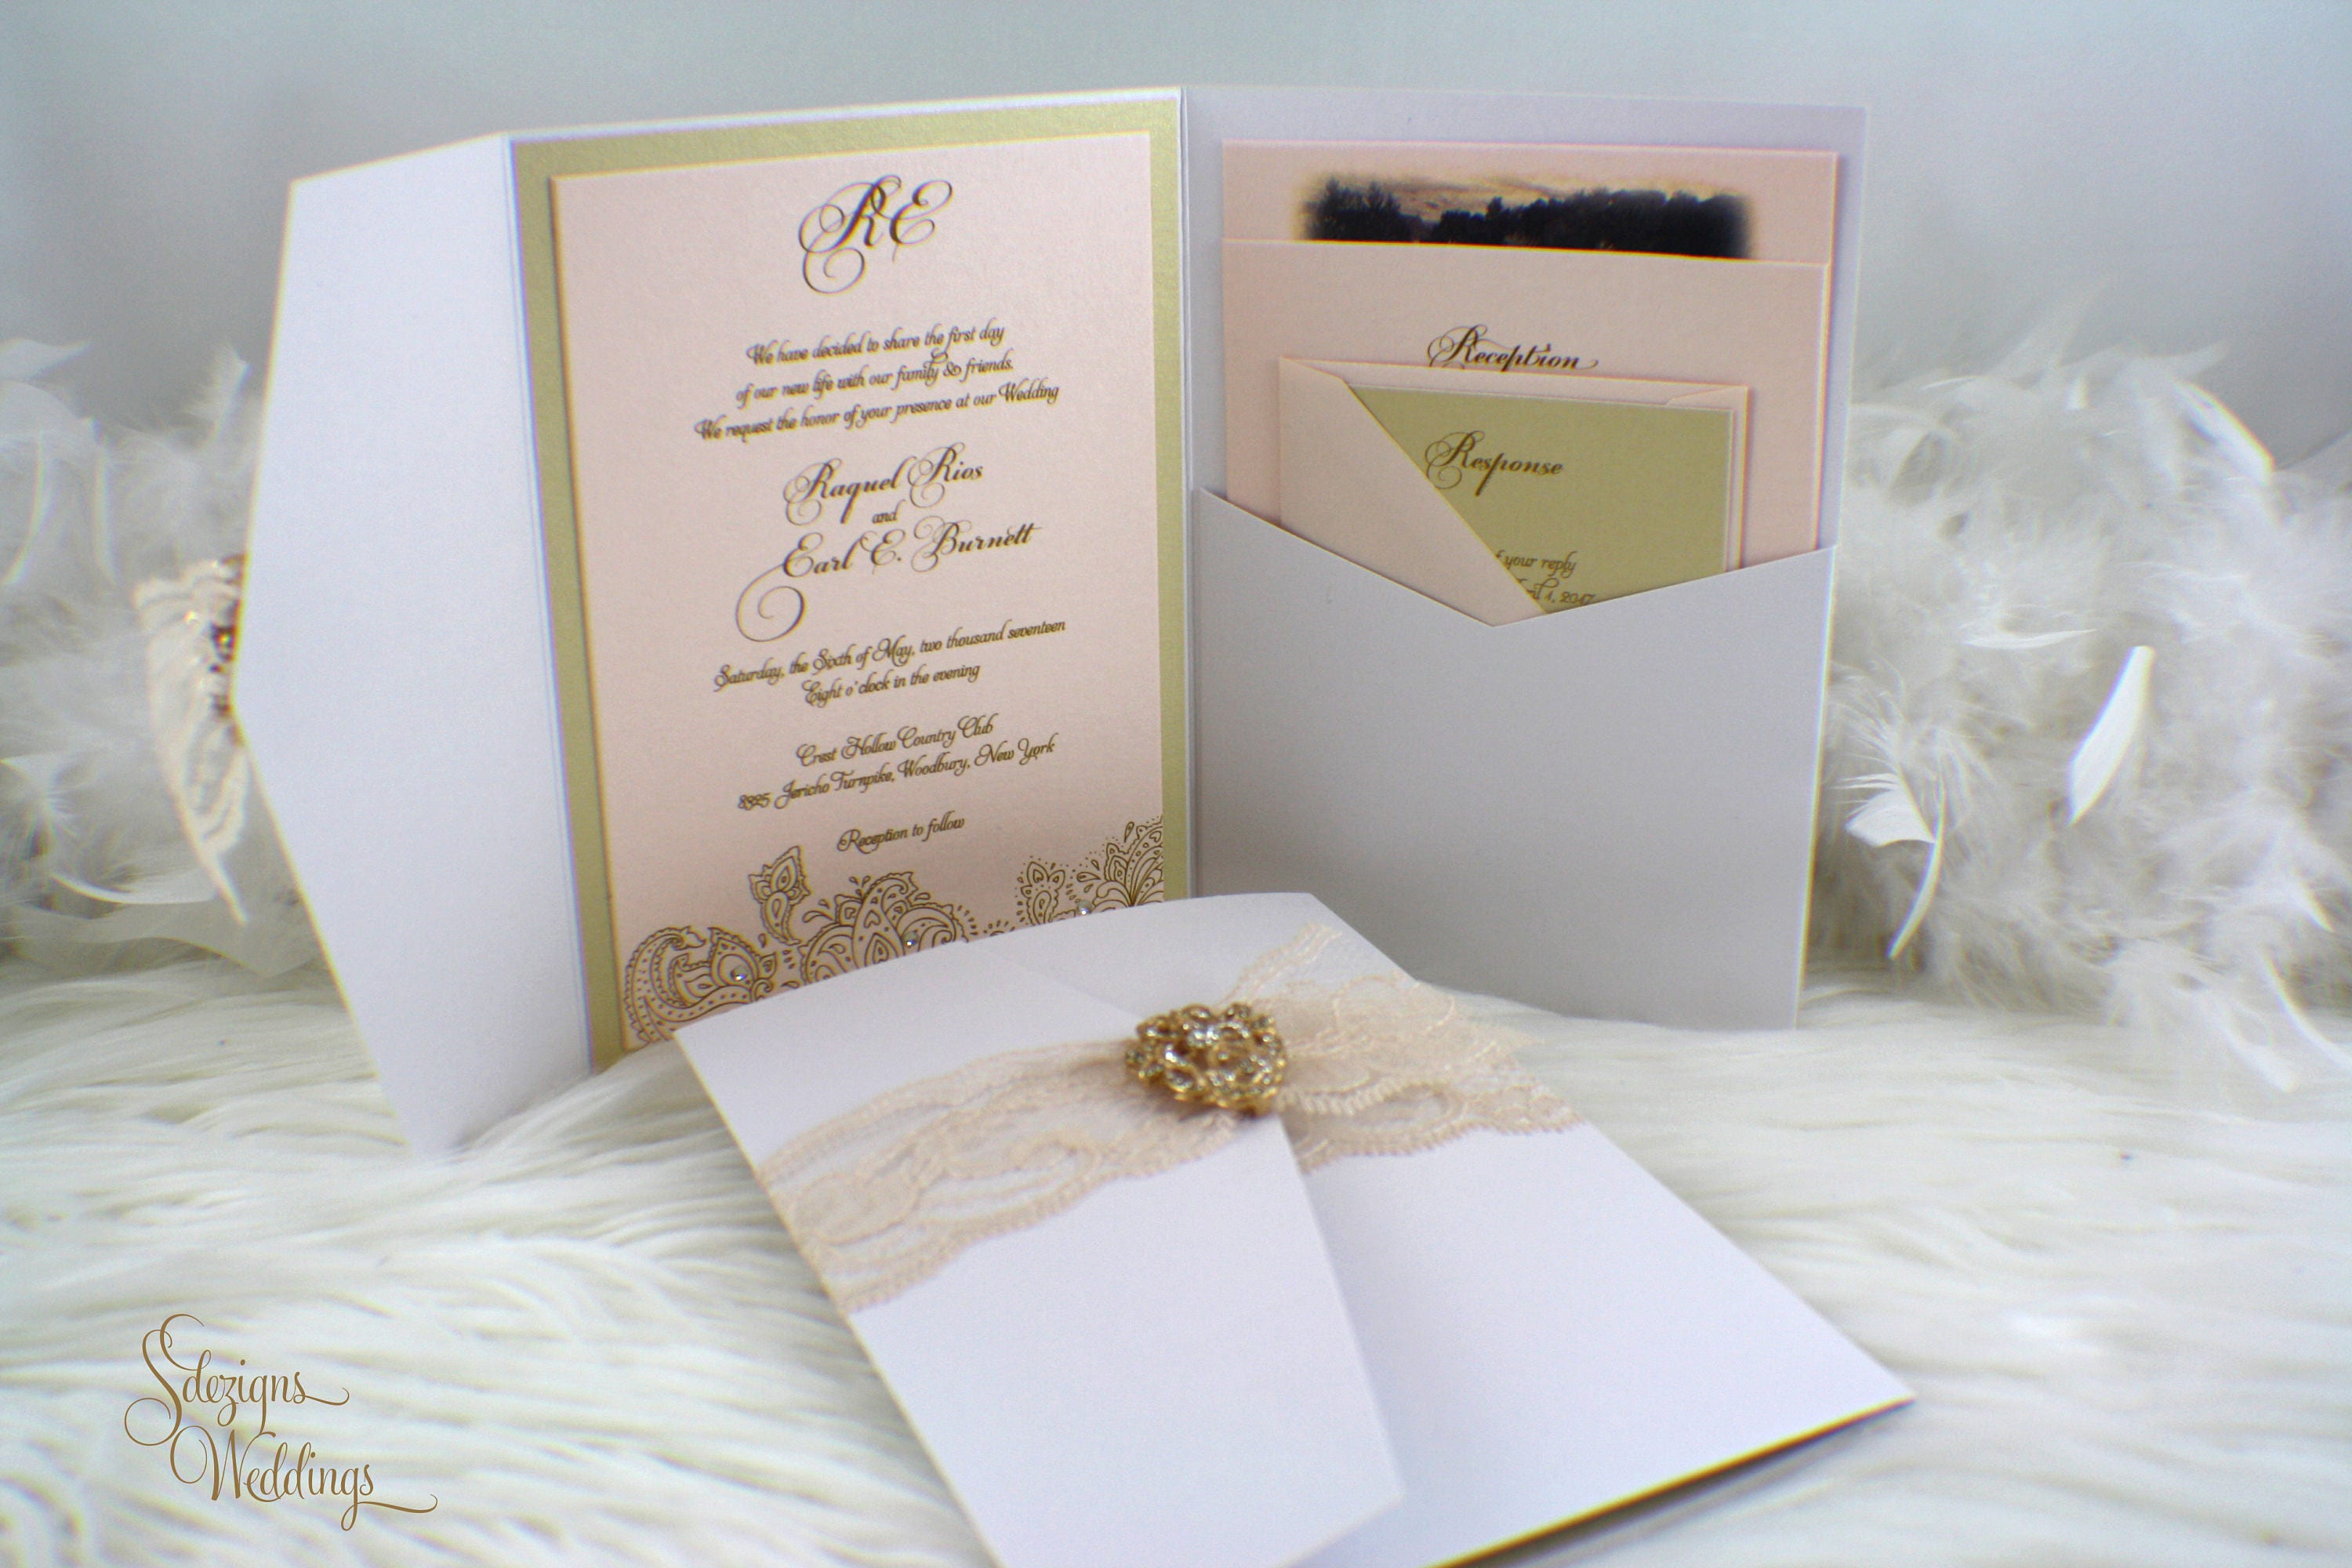 50: Vintage Wedding Invitations With Lace At Websimilar.org